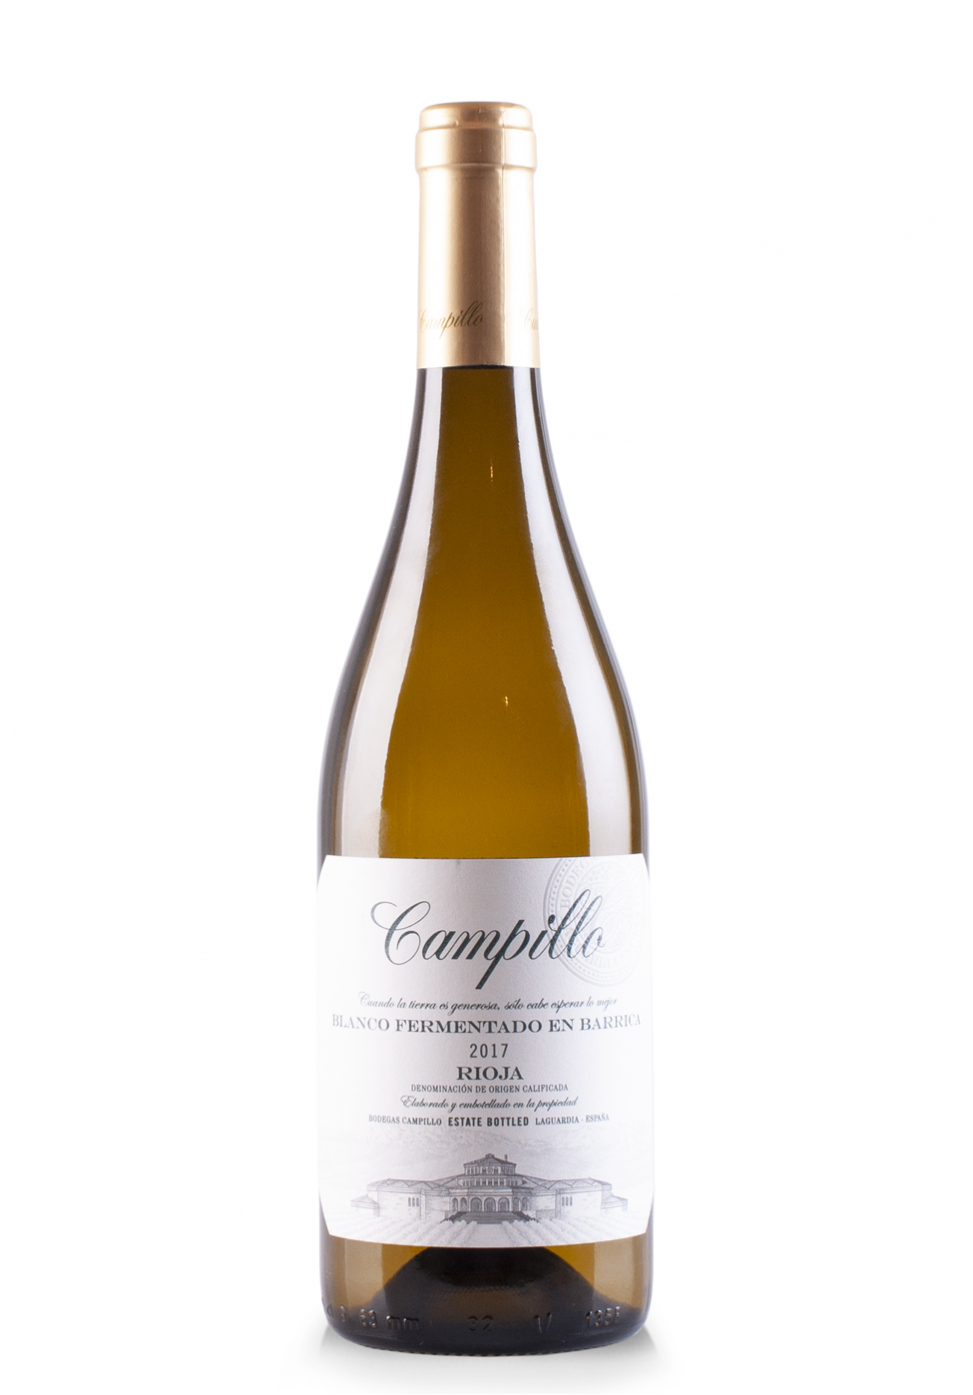 Vin Campillo Blanco DOC Rioja, Barrel Fermented 2017 (0.75L)